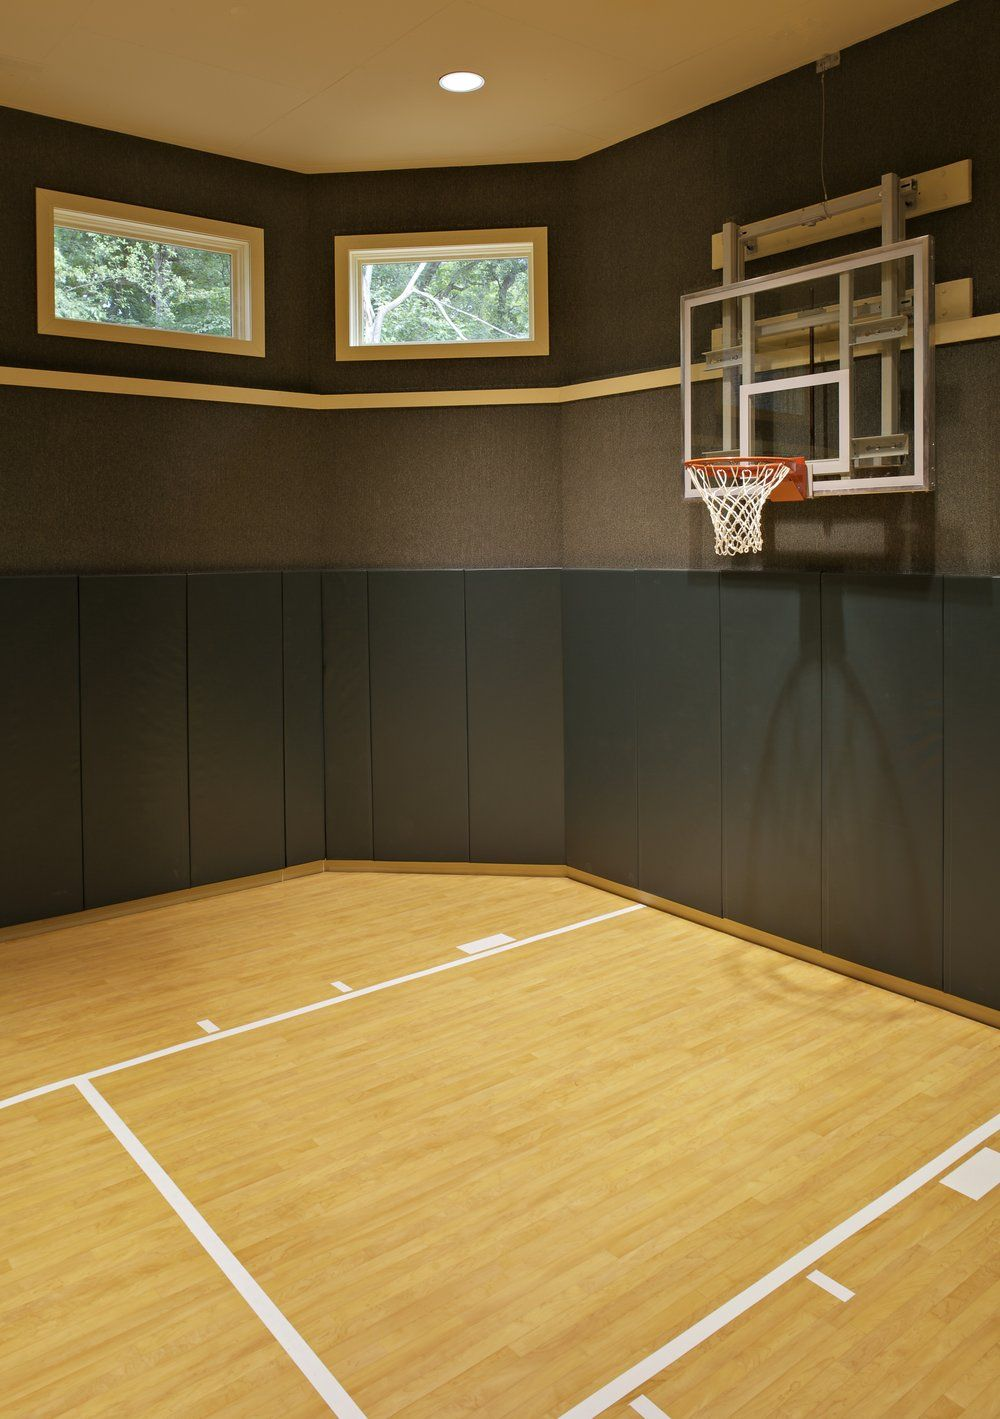 Custom Indoor Sports Court Home Addition By Southampton Builders In Naperville Il Naperville Home Basketball Court Indoor Sports Court Indoor Basketball Court